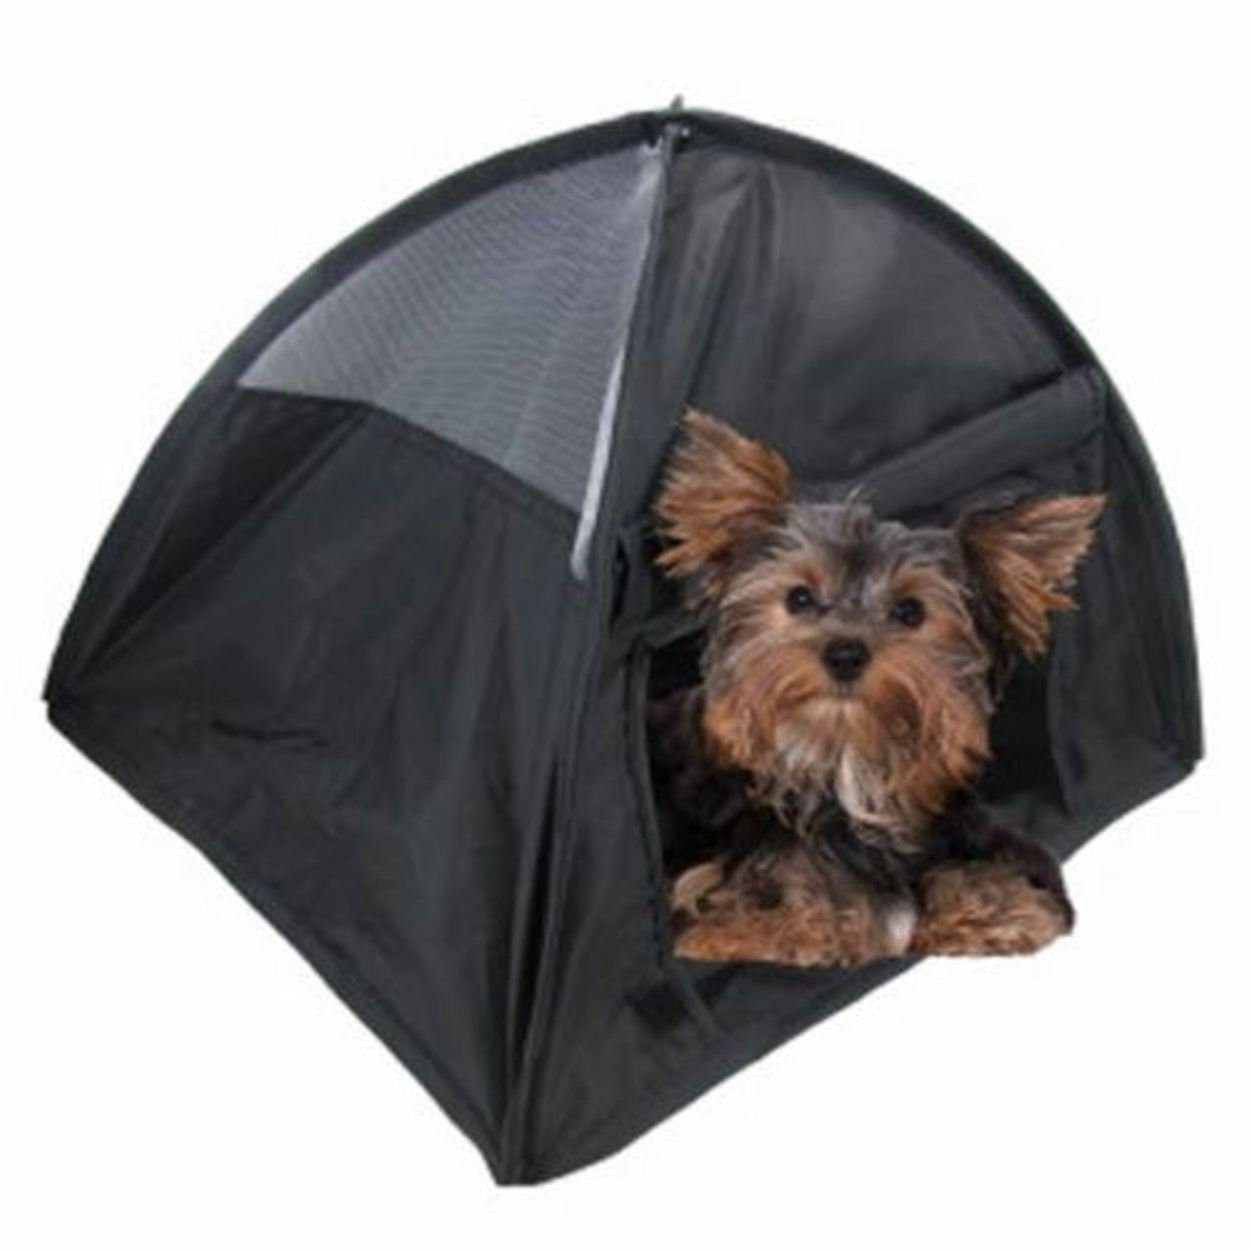 Miniature Puppy Tent  sc 1 st  Mini Display Tents & Mini Display Tents | Miniature Puppy Tent